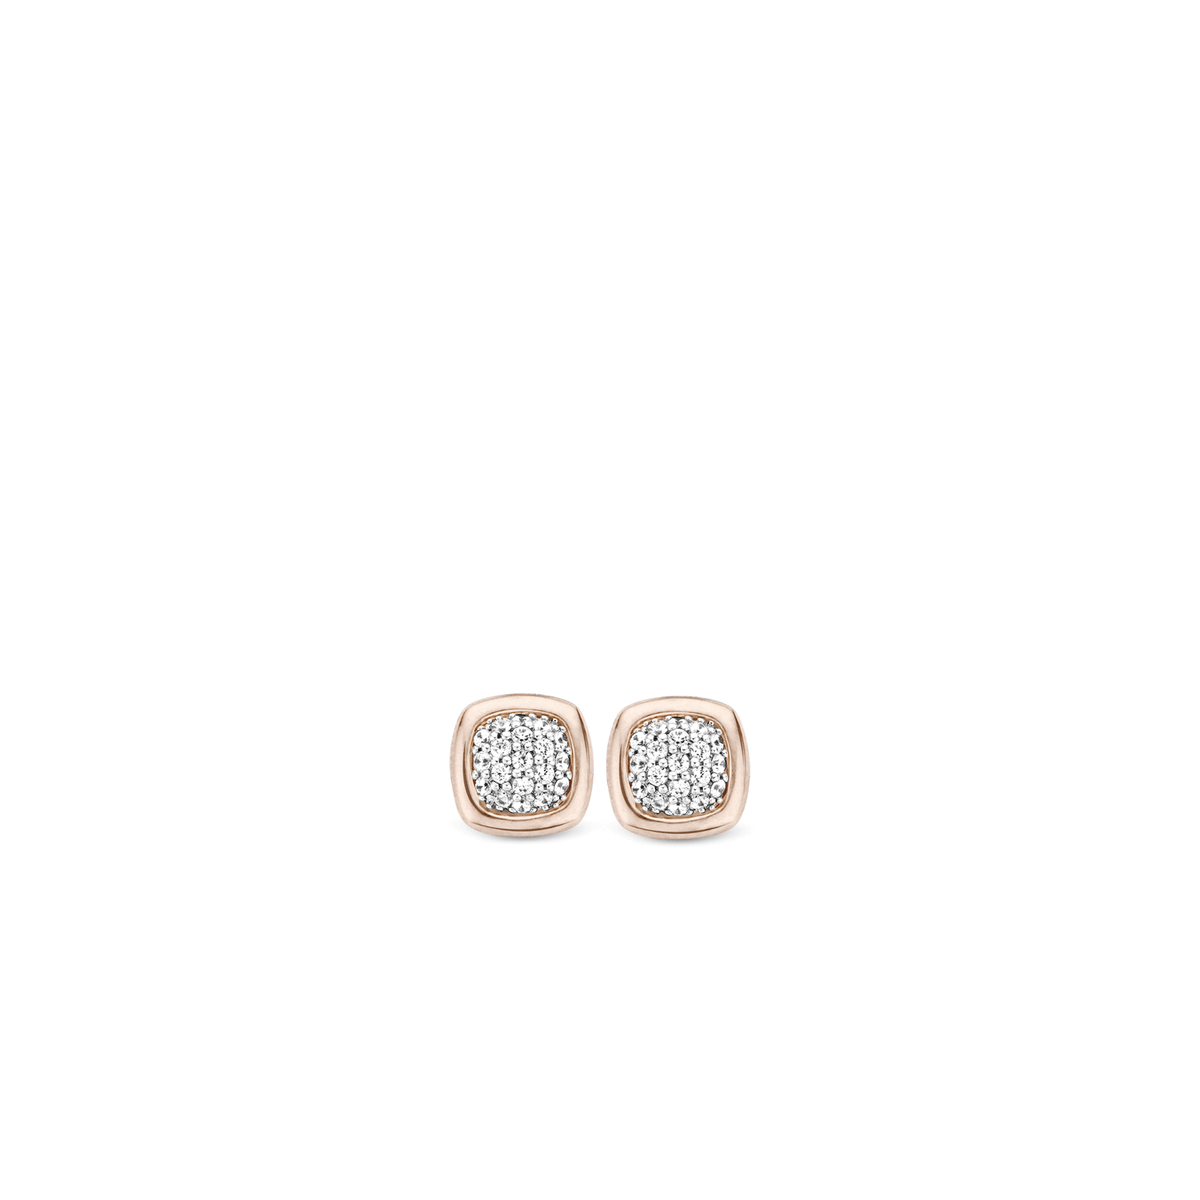 TI SENTO - Milano Earrings 7741ZR